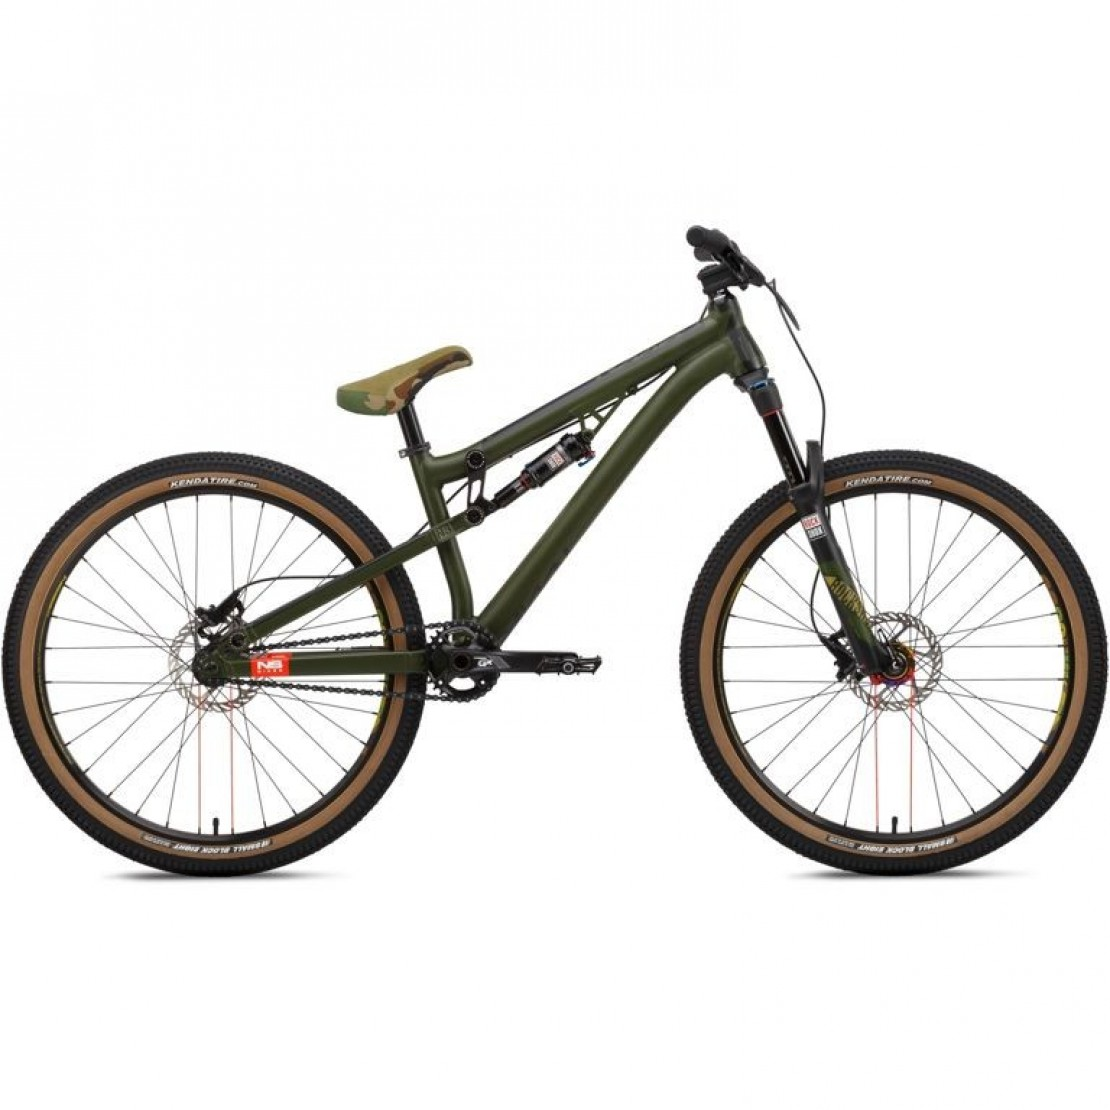 Soda Slope 26 2016 - Freeride Bike